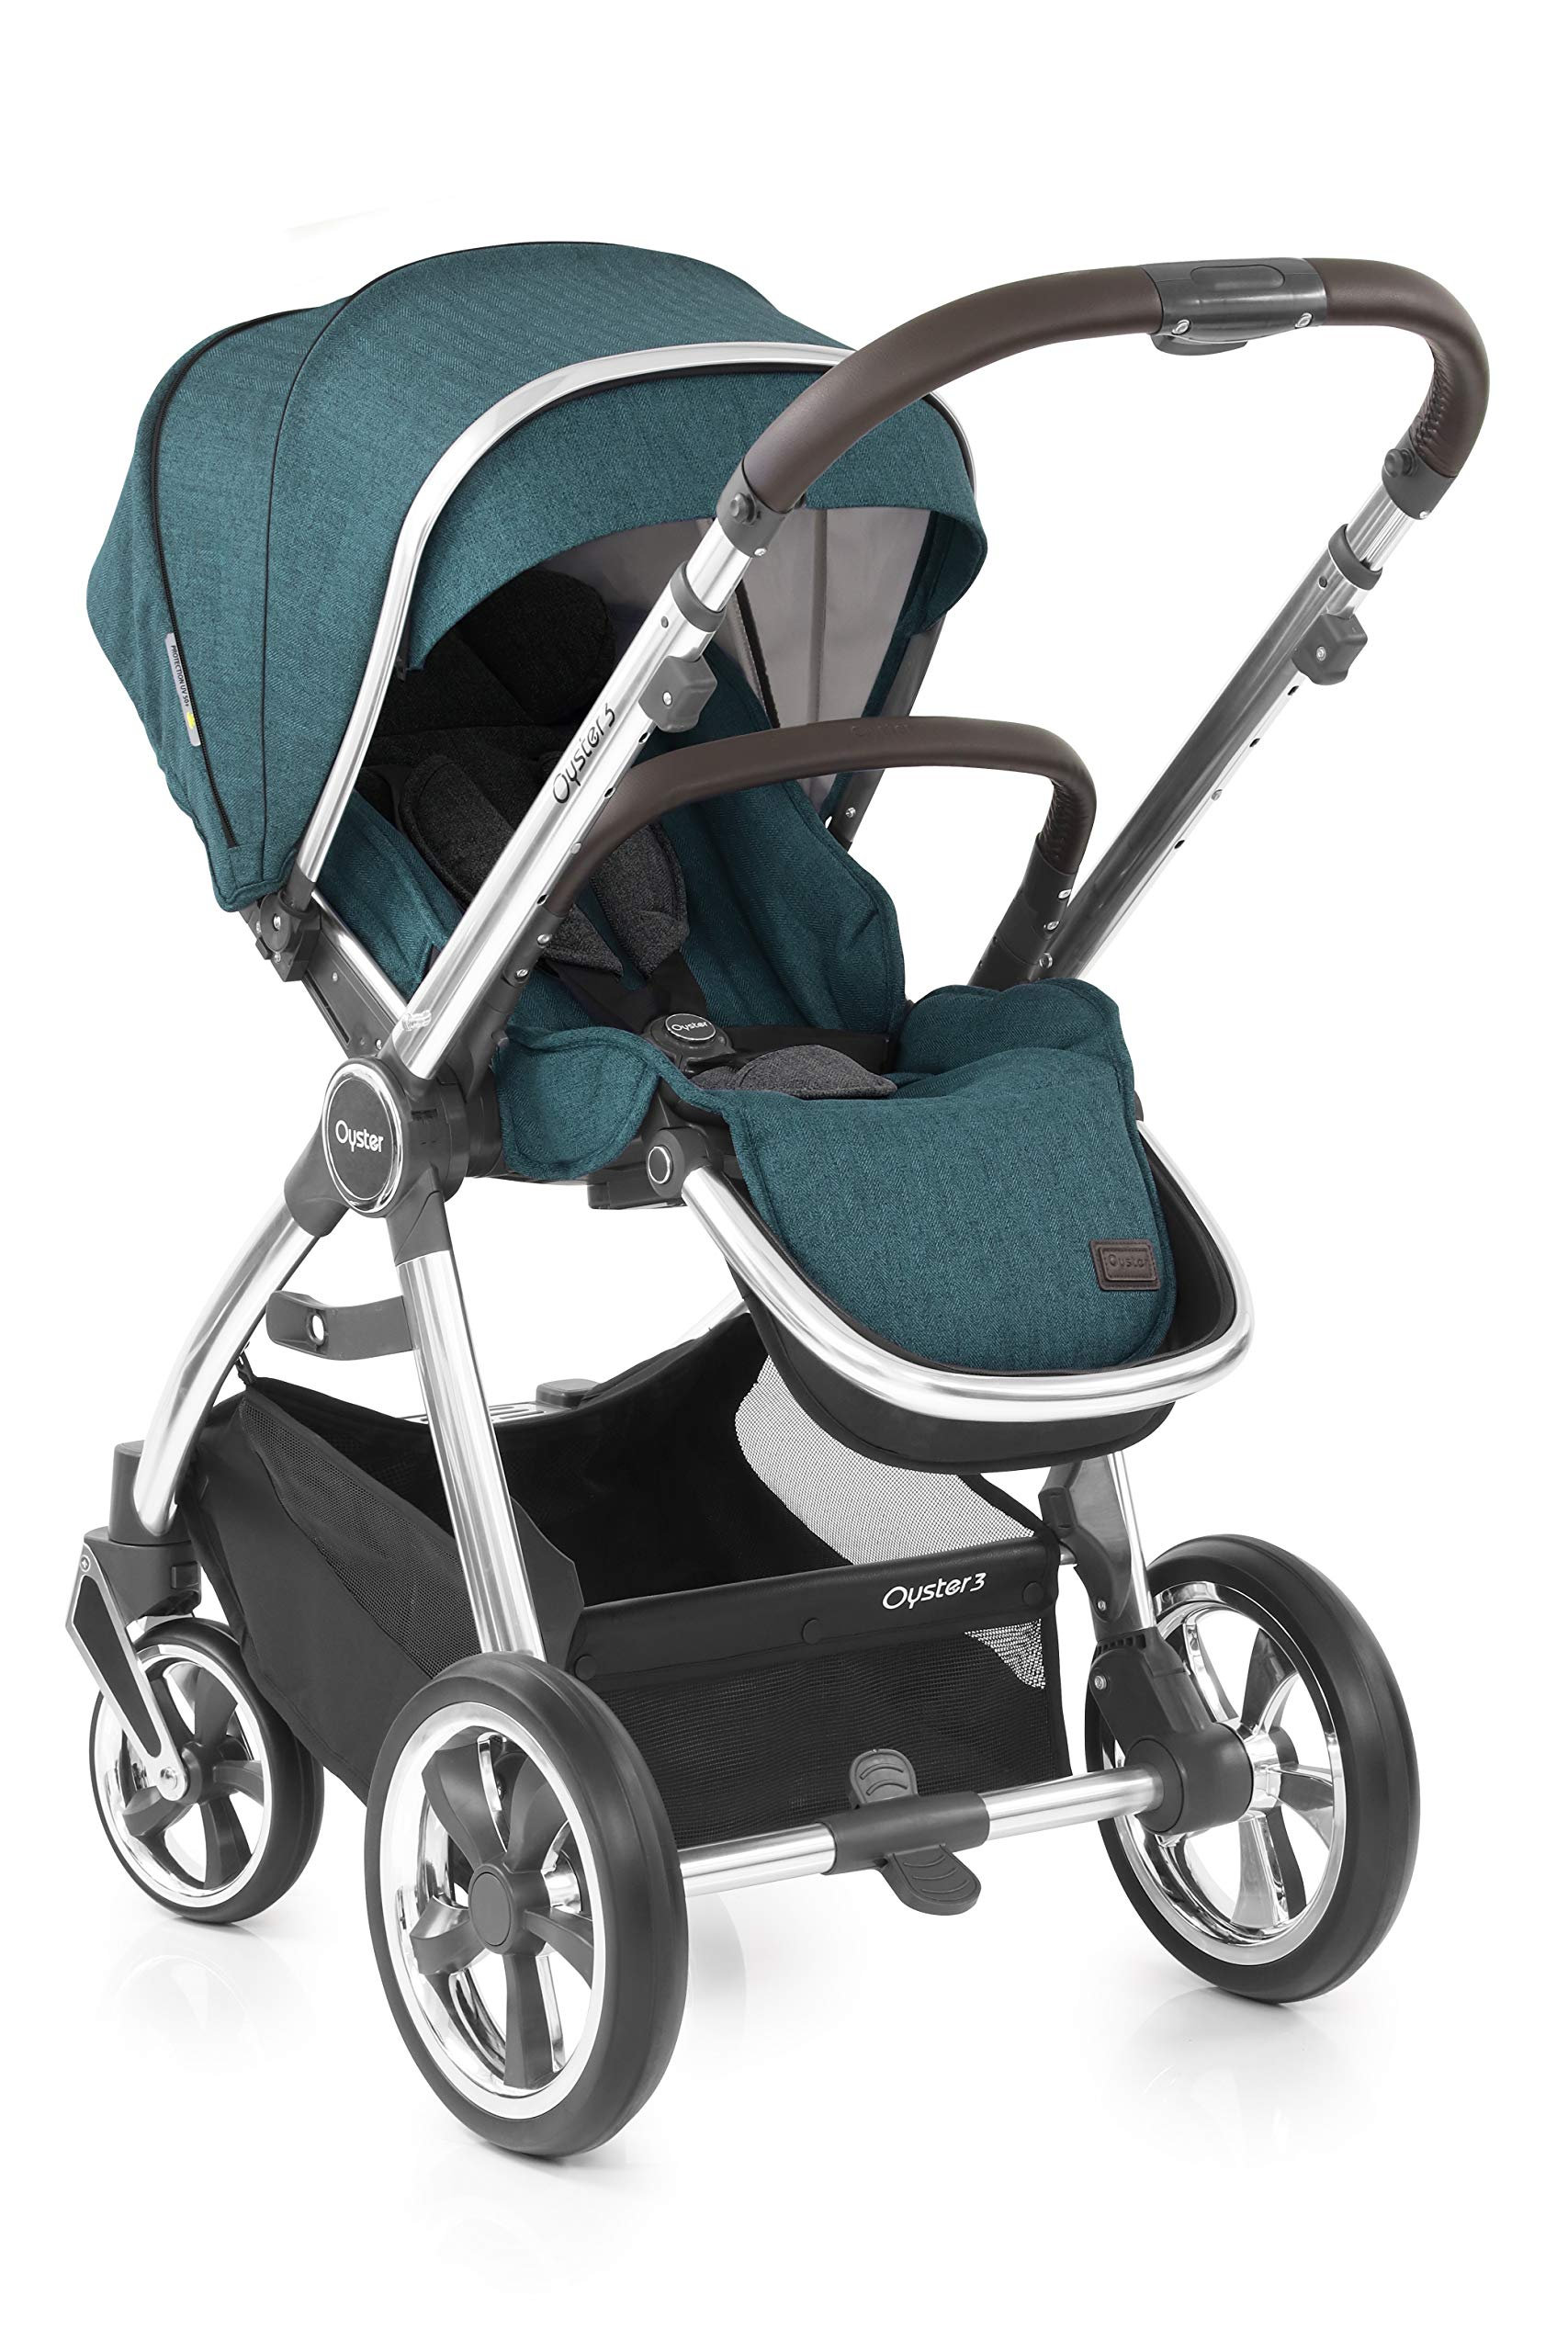 Babystyle Oyster3 Pushchair in Peacock Mirror Chassis Babystyle  1